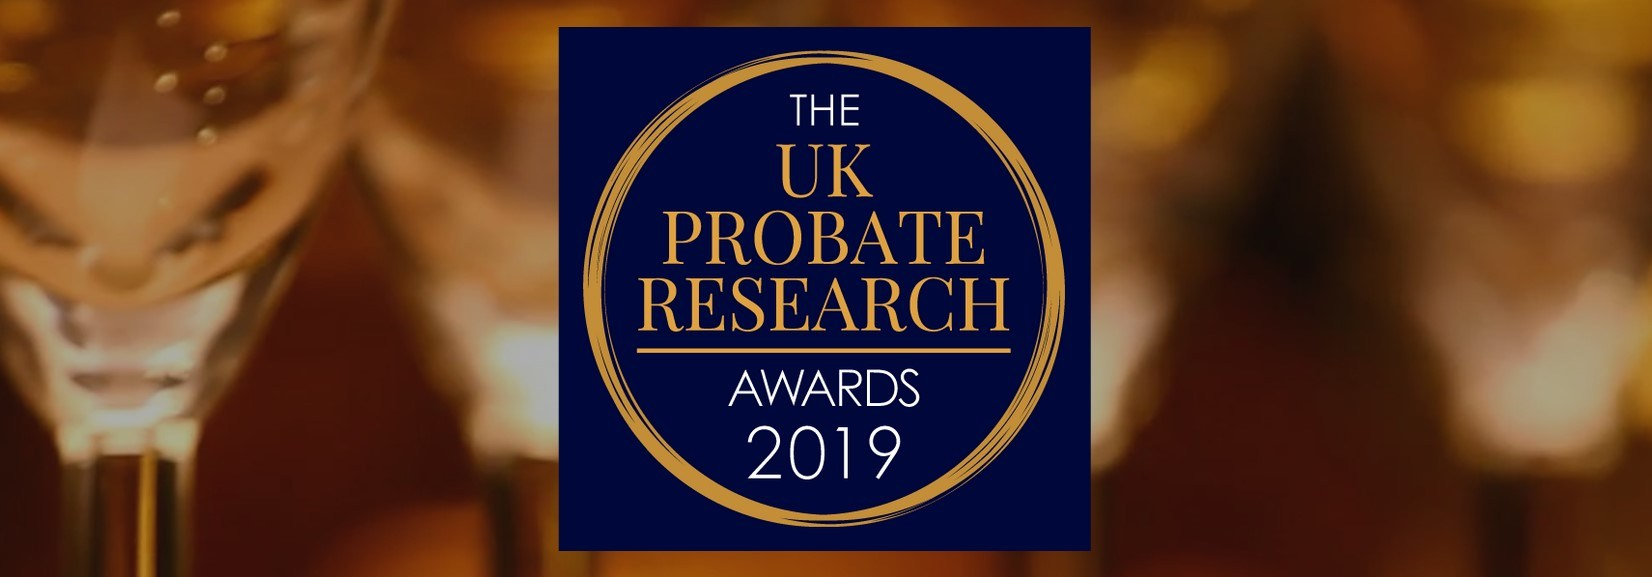 The UK Probate Research Awards 2019